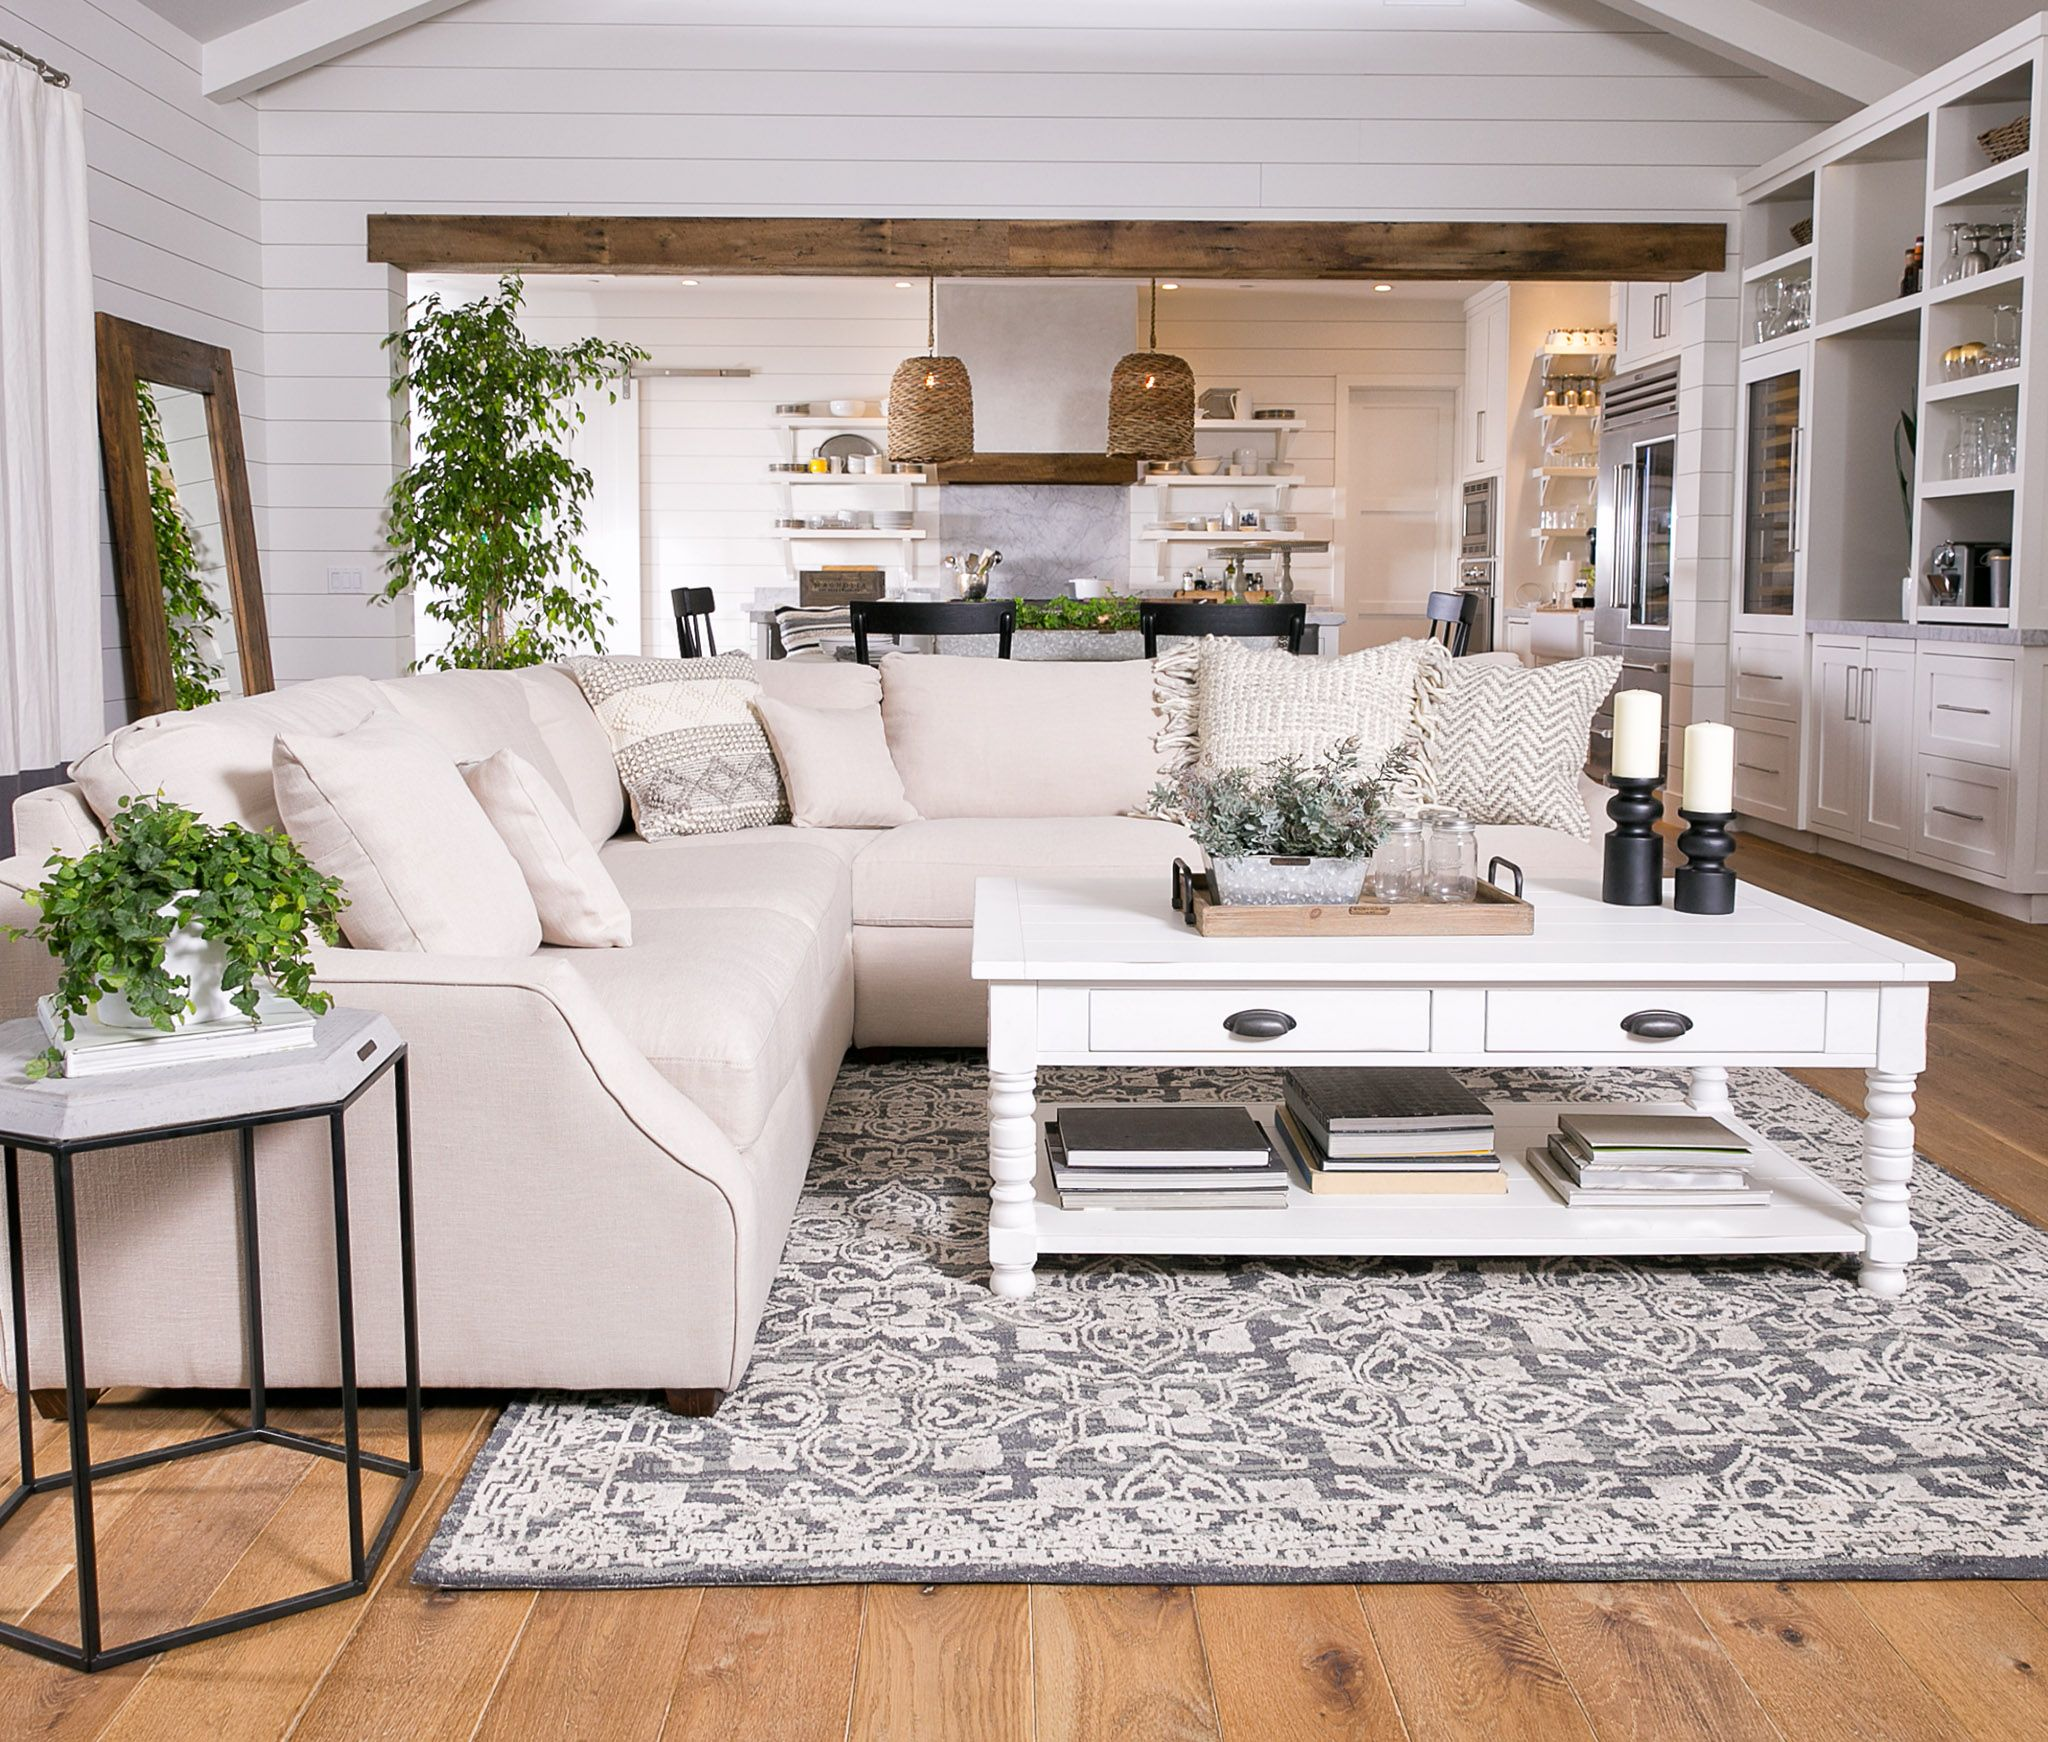 Magnolia Home Homestead 3 Piece Sectional By Joanna Gaines Has Lots Of Space To Stretch Out W Farm House Living Room Country Style Living Room Home Living Room